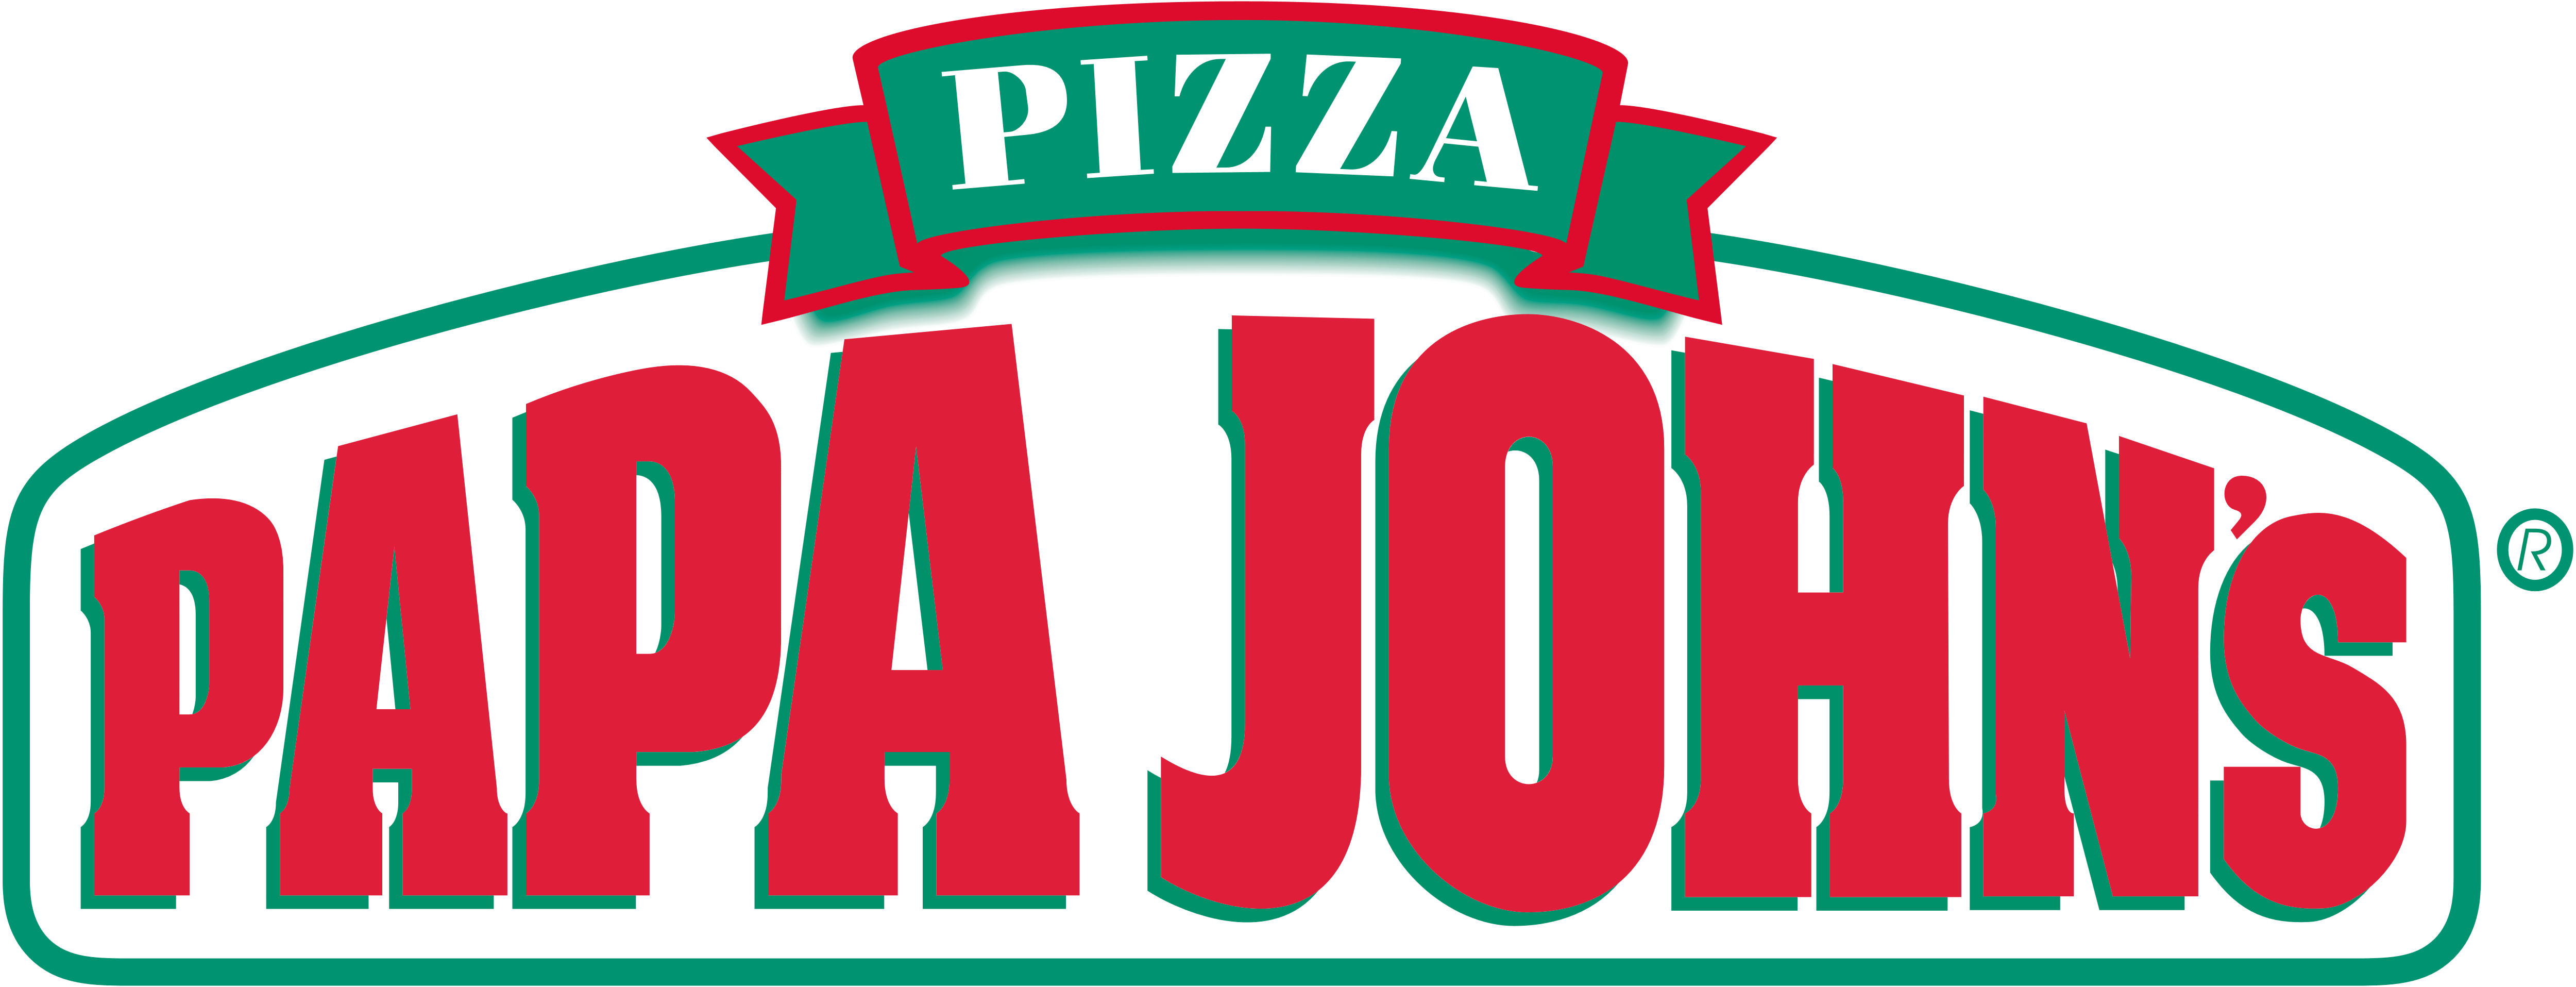 Papa Johns has ended its sponsorship deal with the NFL three months after founder and former CEO John Schnatter blamed player protests during the national anthem for declining sales.